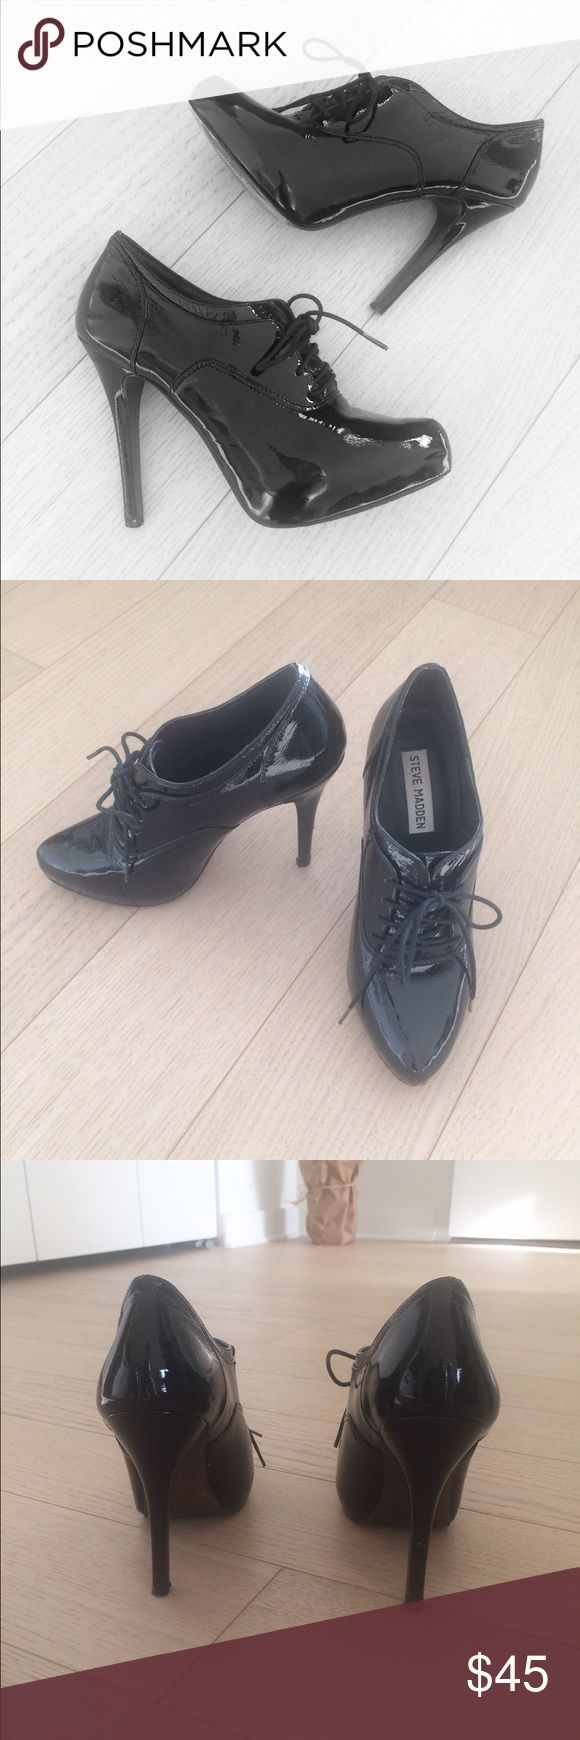 Selling this Steve Madden Patent Leather Heel on Poshmark! My username is: zoelynn38. #shopmycloset #poshmark #fashion #shopping #style #forsale #Steve Madden #Shoes